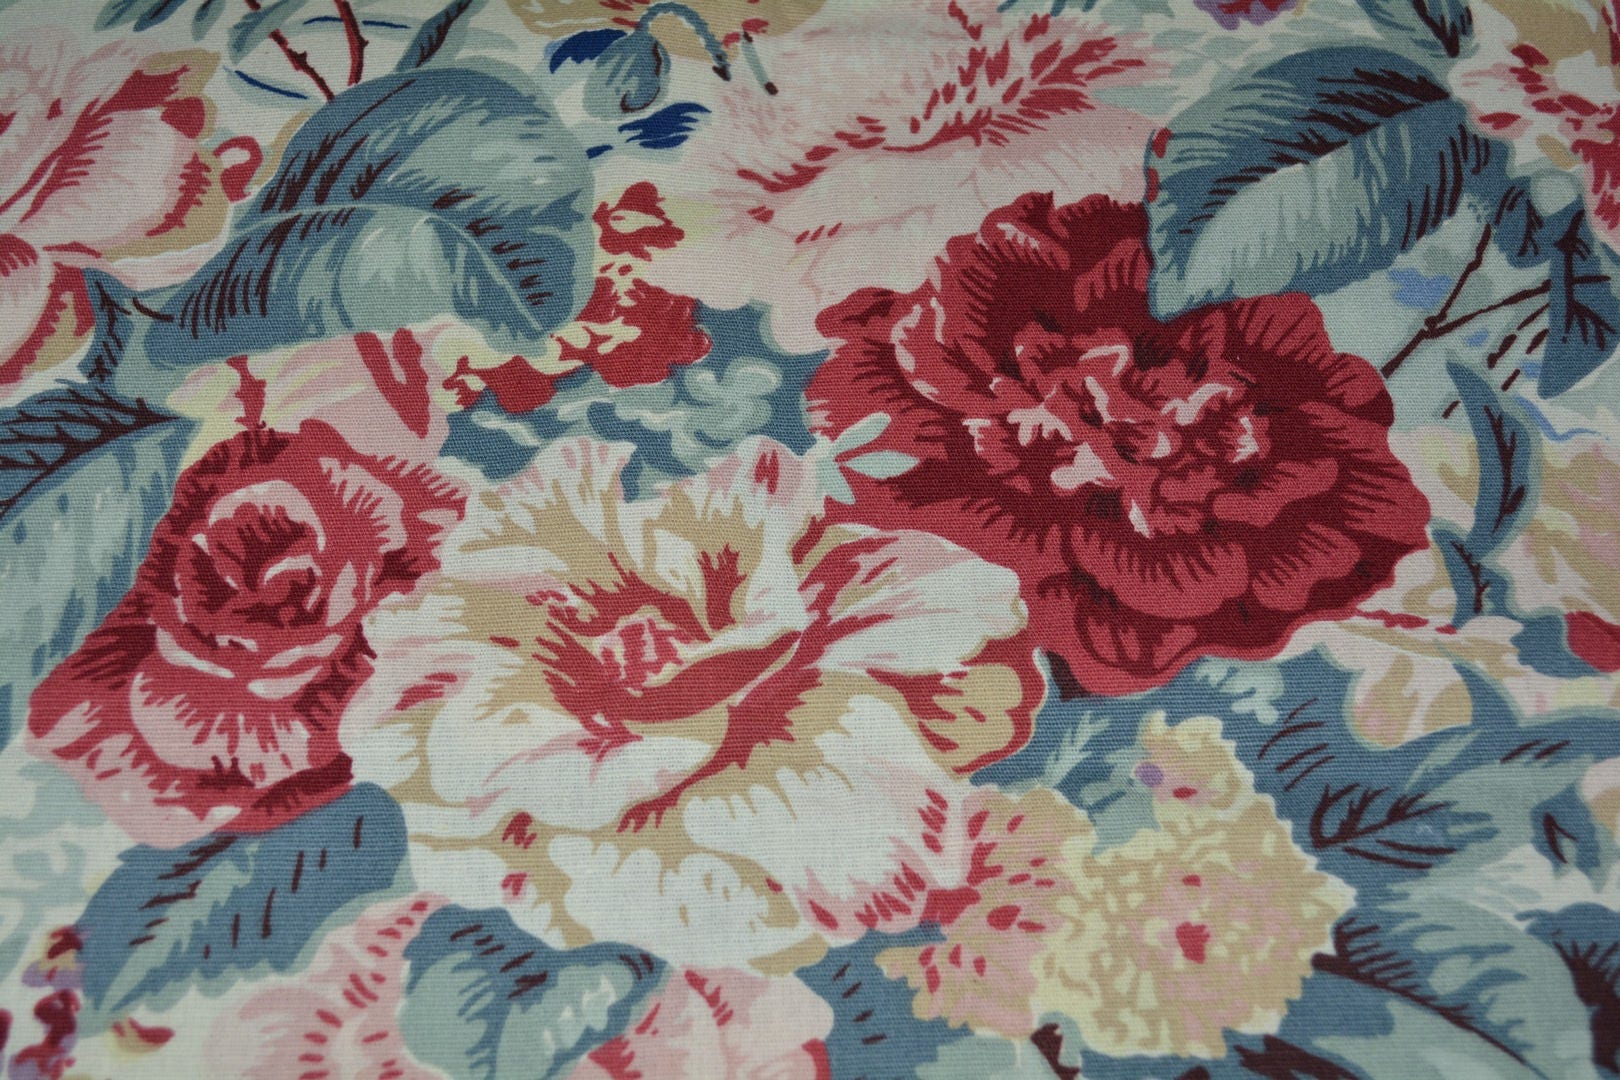 Shabby Chic Decor Laura Ashley Vintage Upholstery Fabric Floral